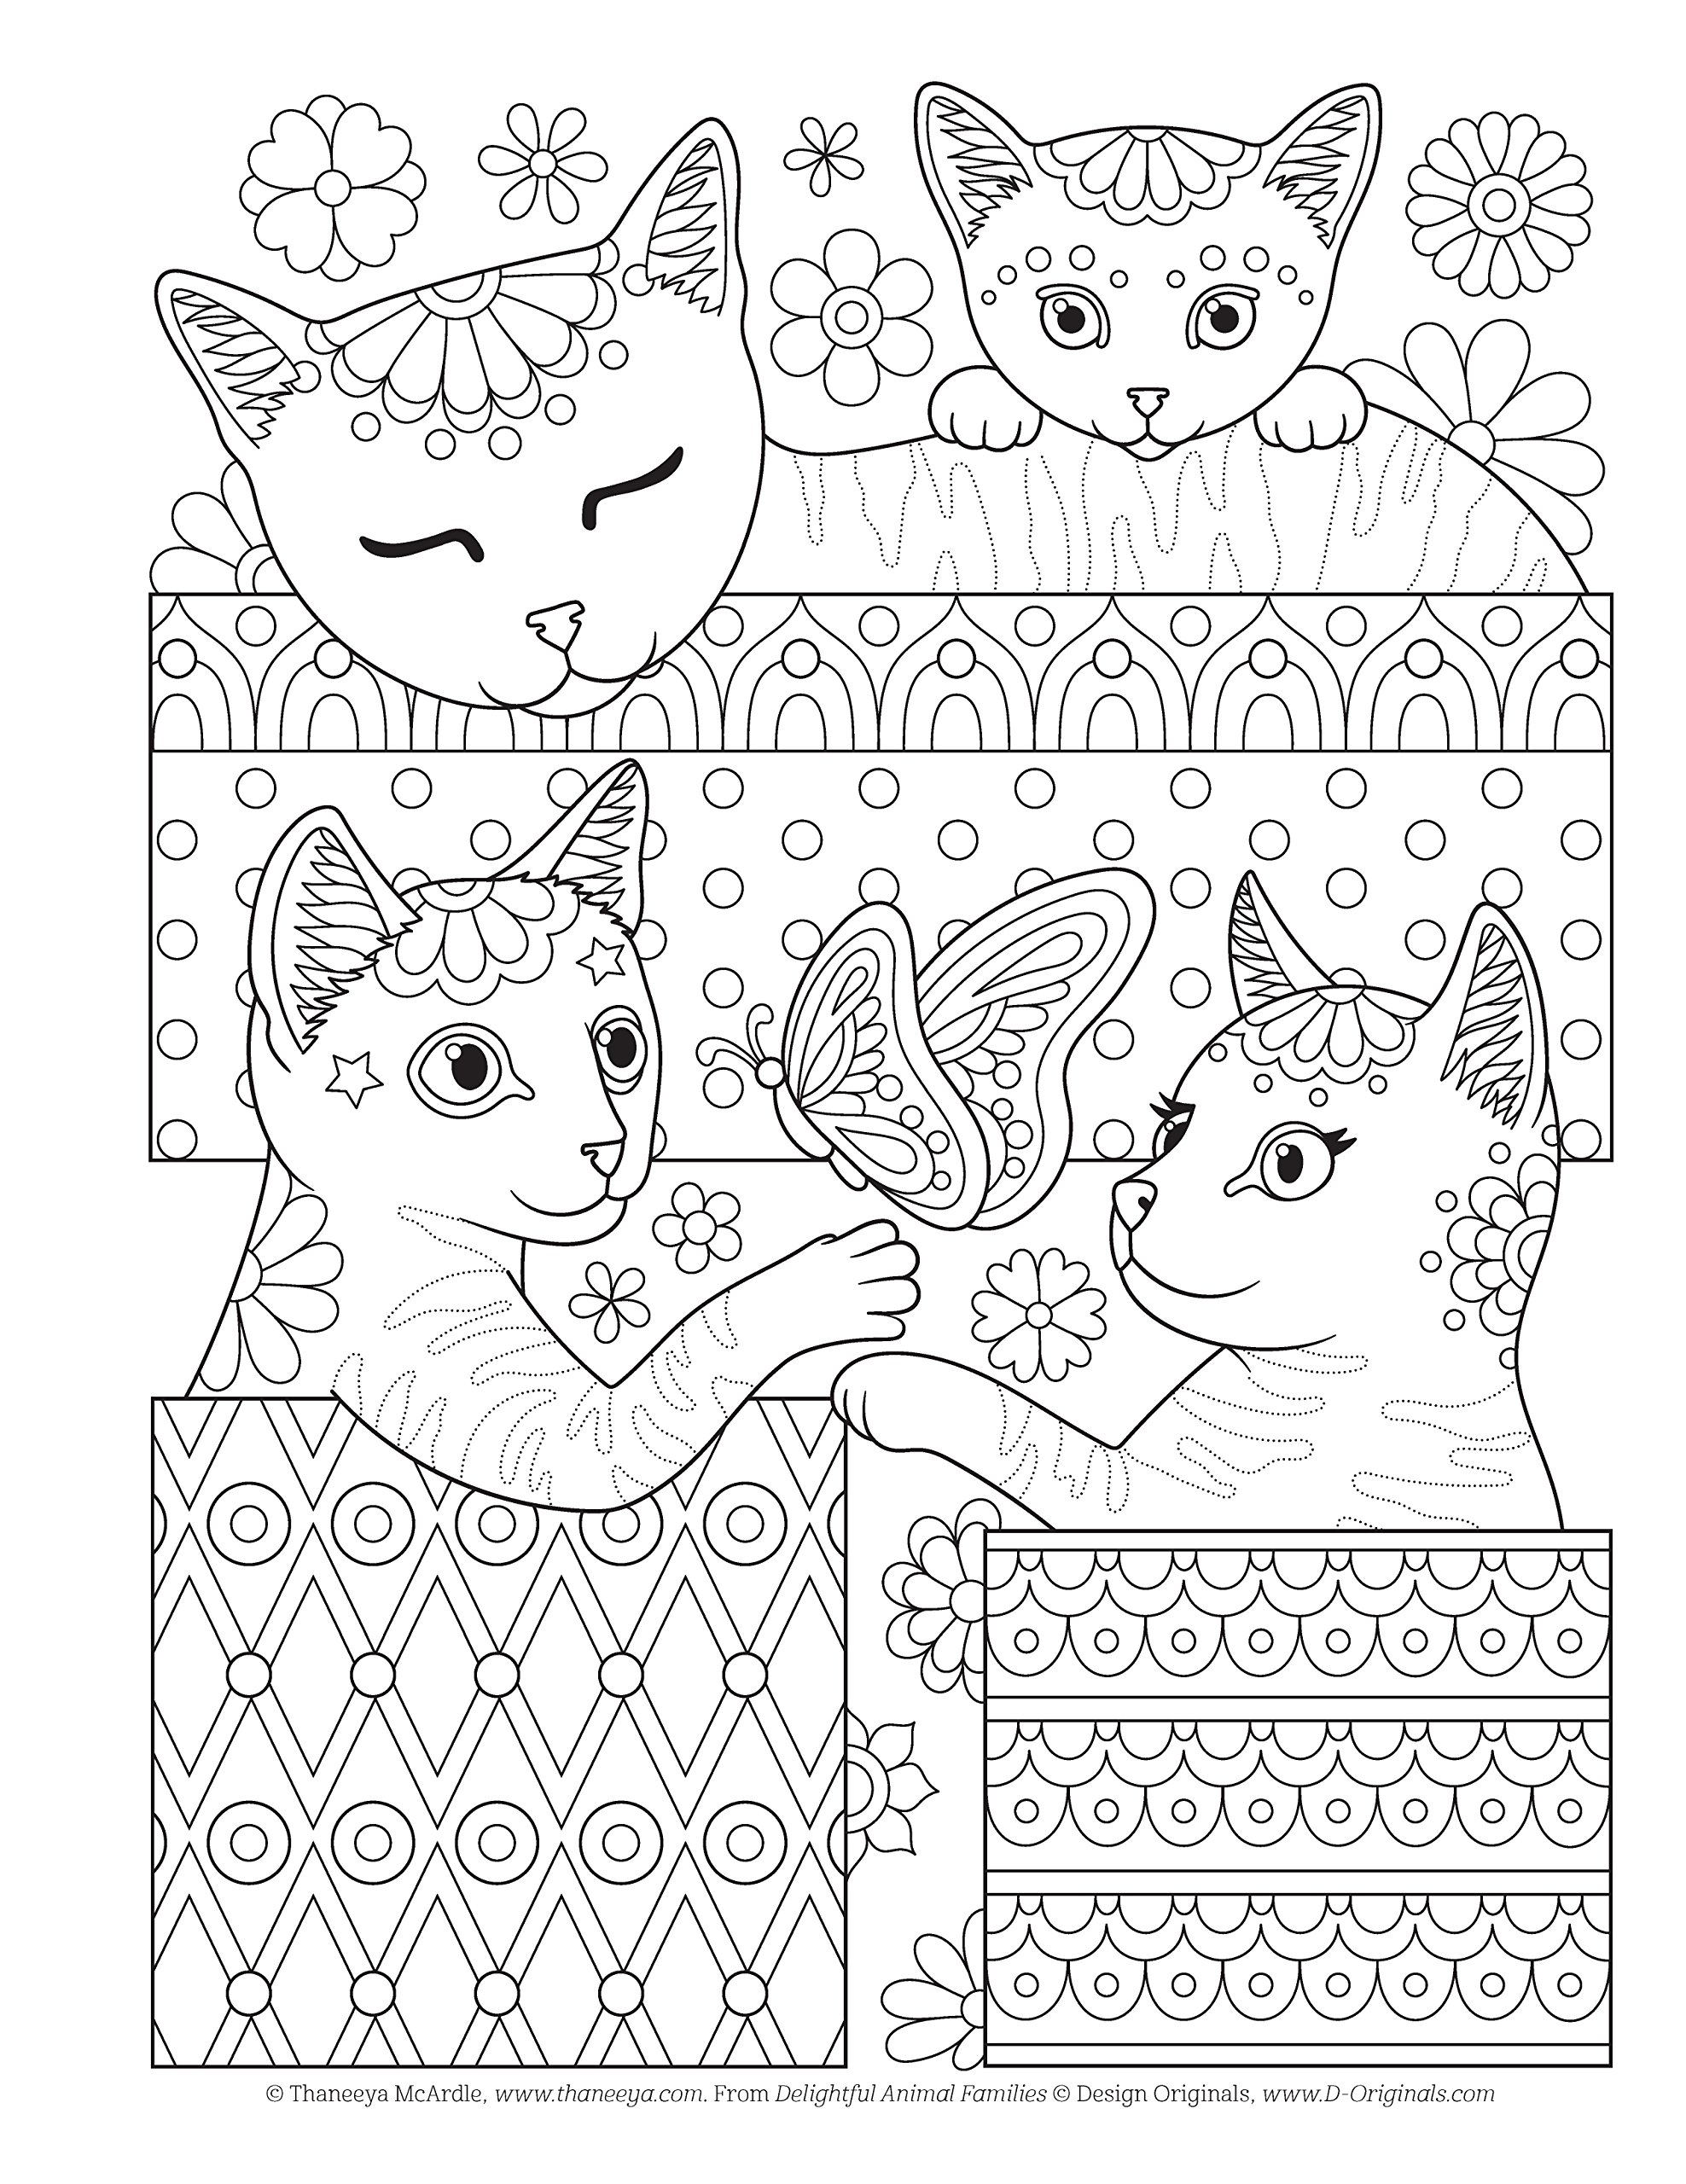 Amazoncom Delightful Animal Families Craft Pattern Color Chill 91xiSTpfQ1L 1497203333 Crafting Groovy Coloring Pages 7